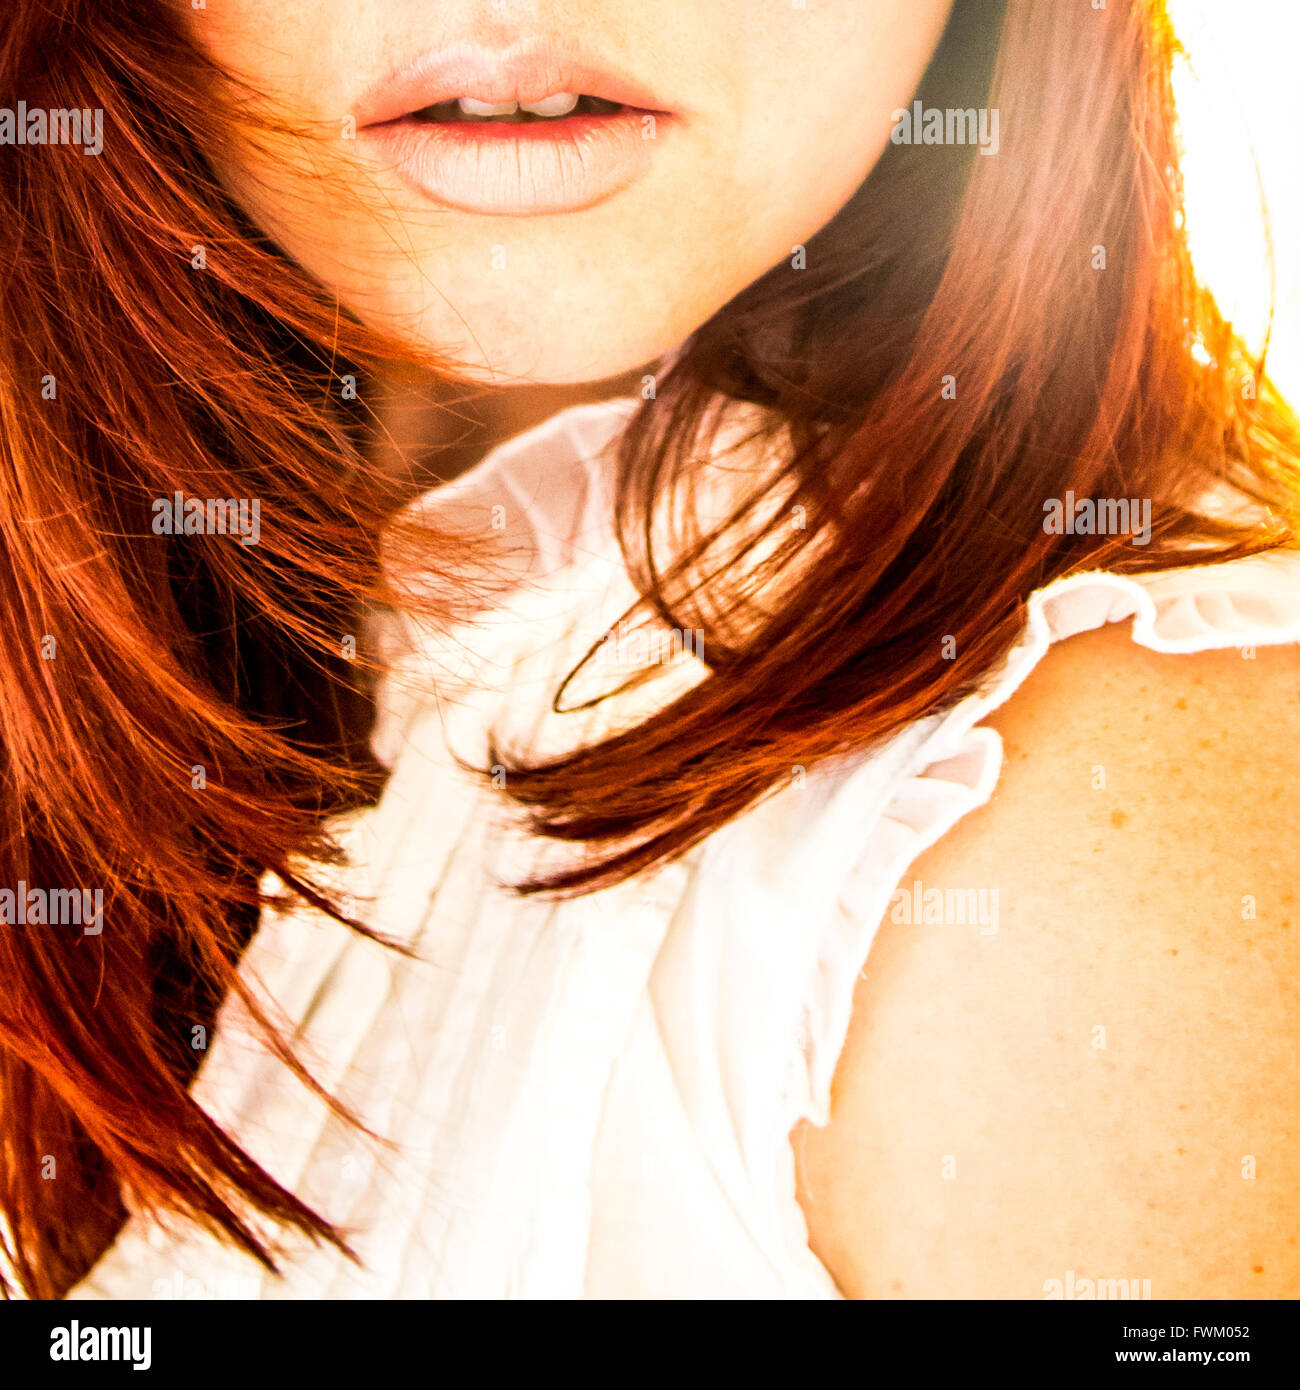 Cropped Image Of Woman With Brown Hair - Stock Image